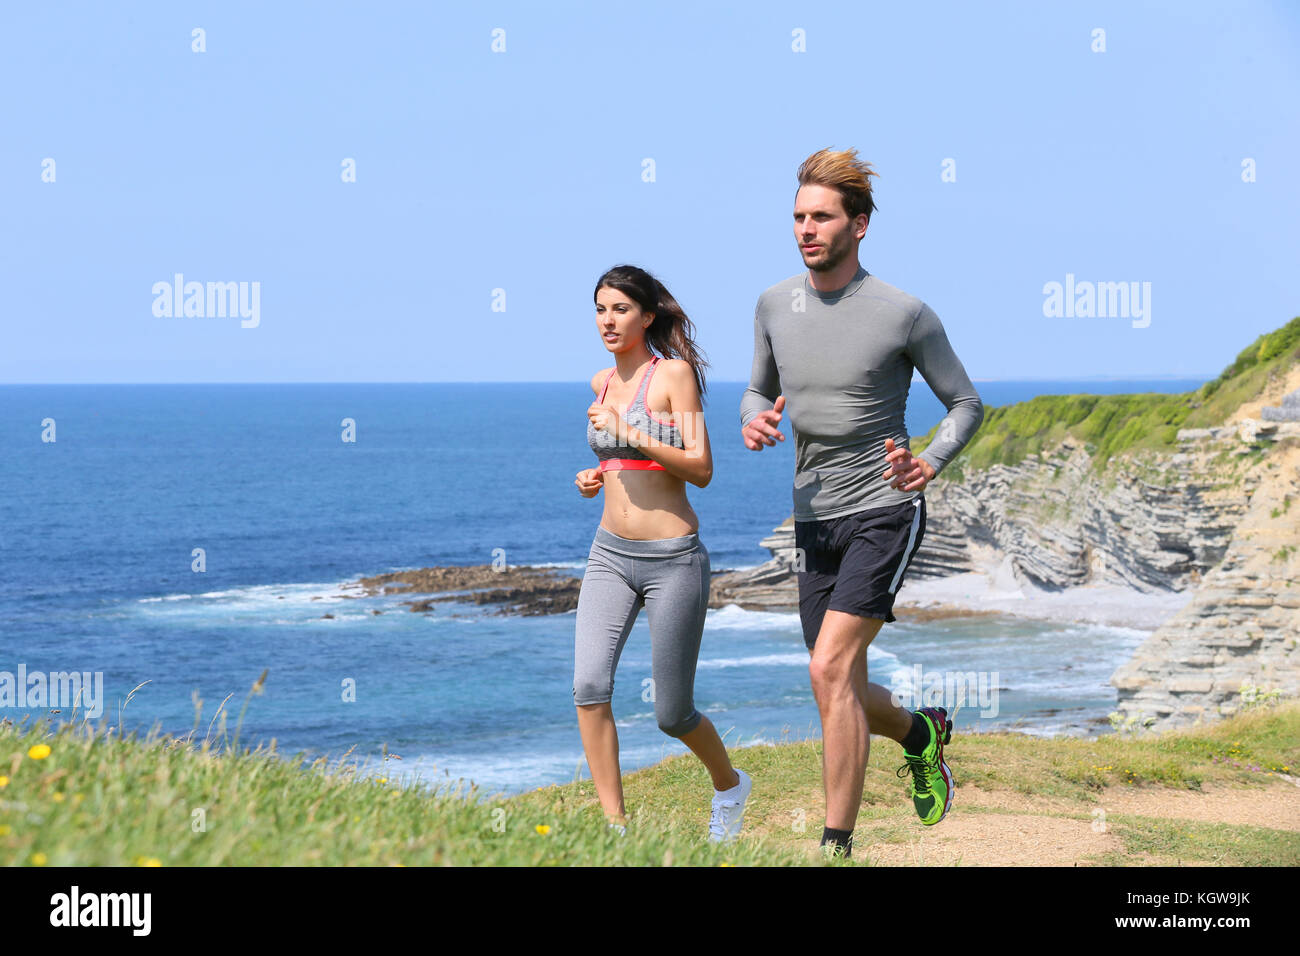 Couple of runners exercising by cliff - Stock Image